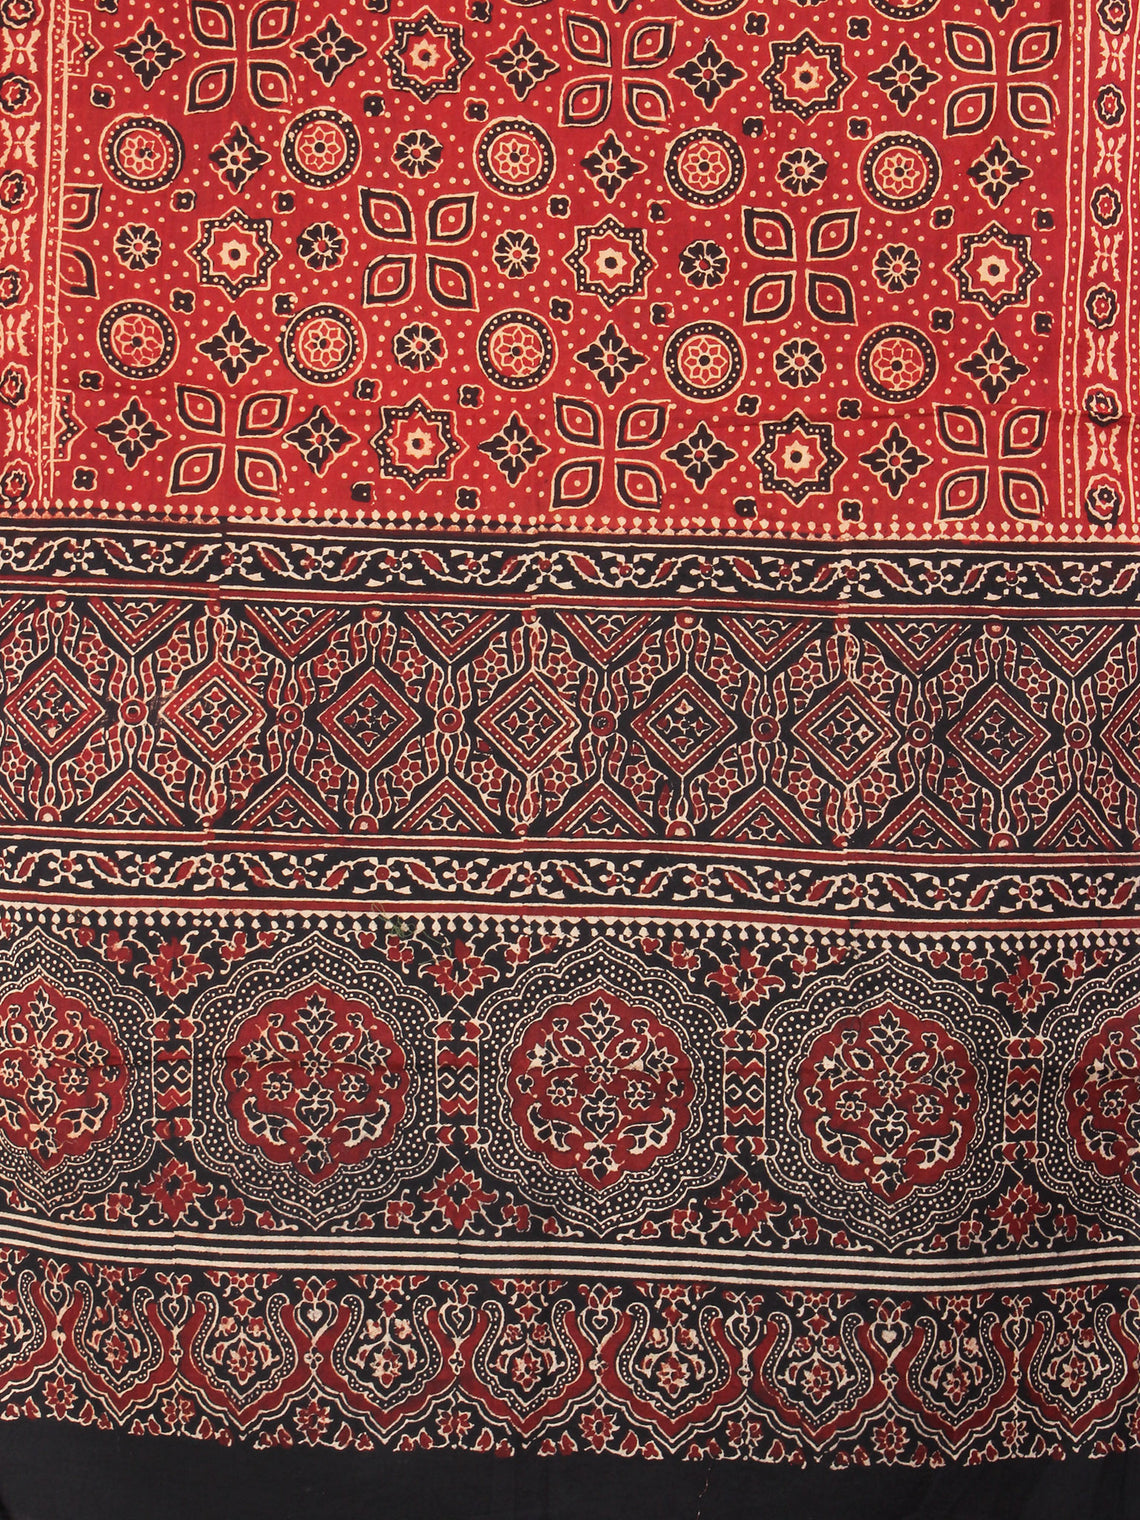 Red Black Maroon Mughal Nakashi Ajrakh Hand Block Printed Cotton Stole - S6317032